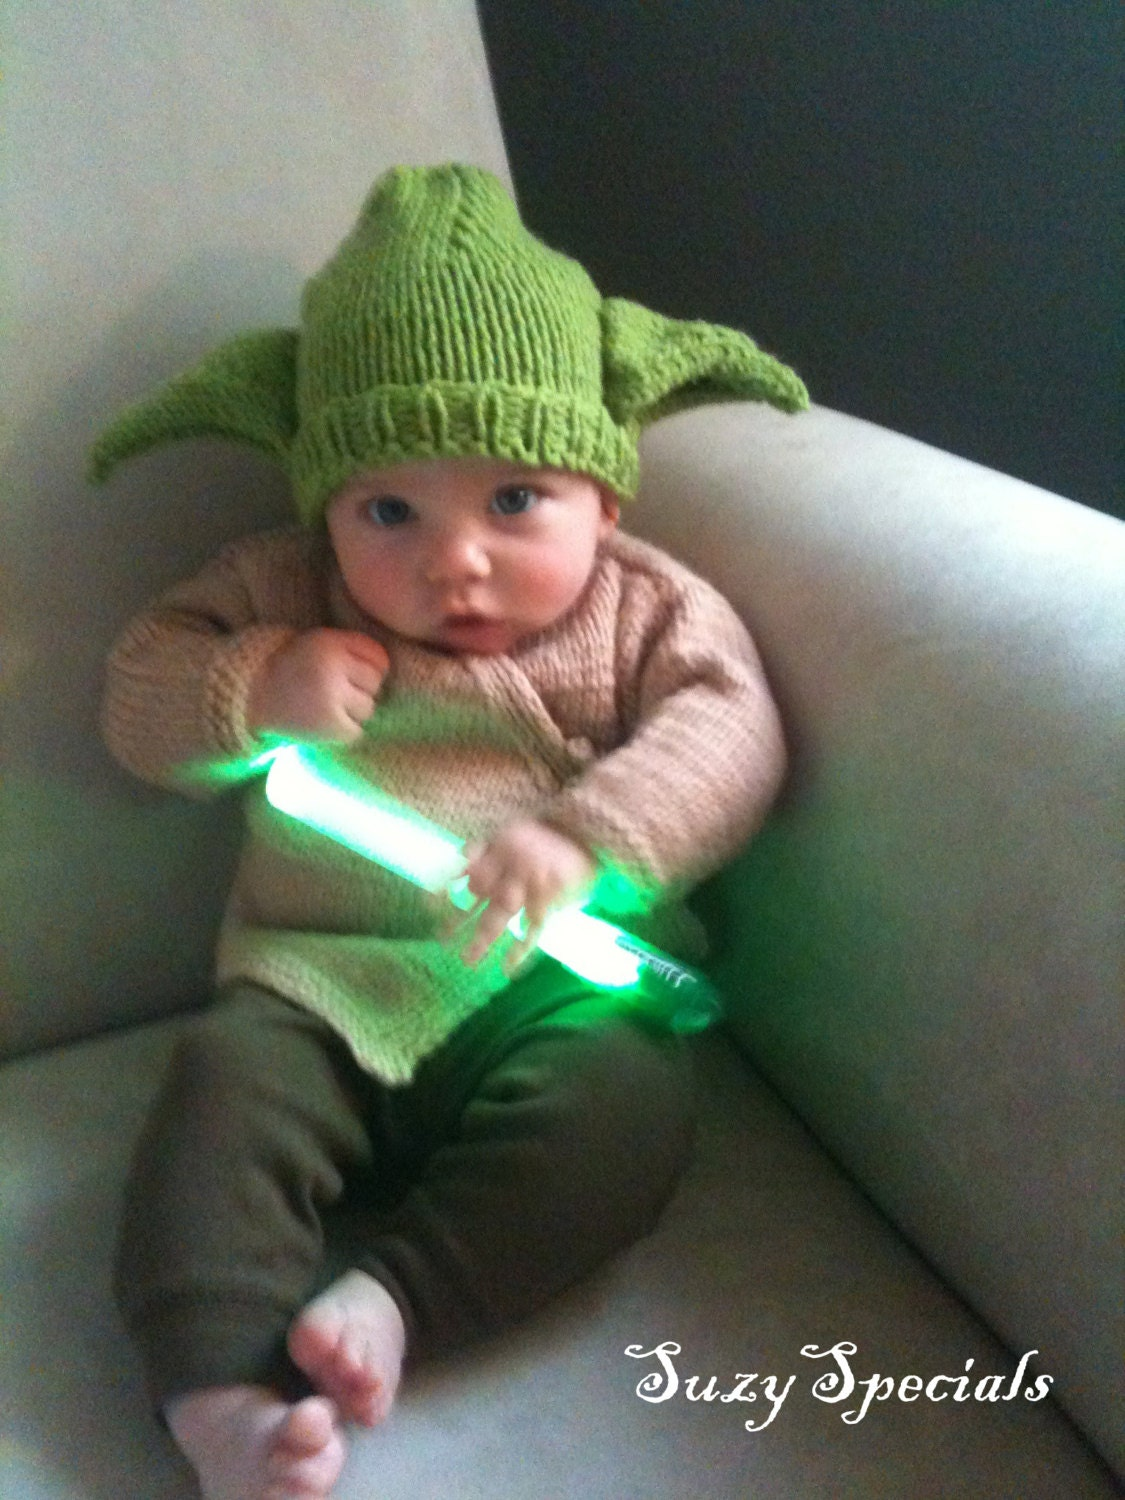 pics for baby yoda costume. Black Bedroom Furniture Sets. Home Design Ideas